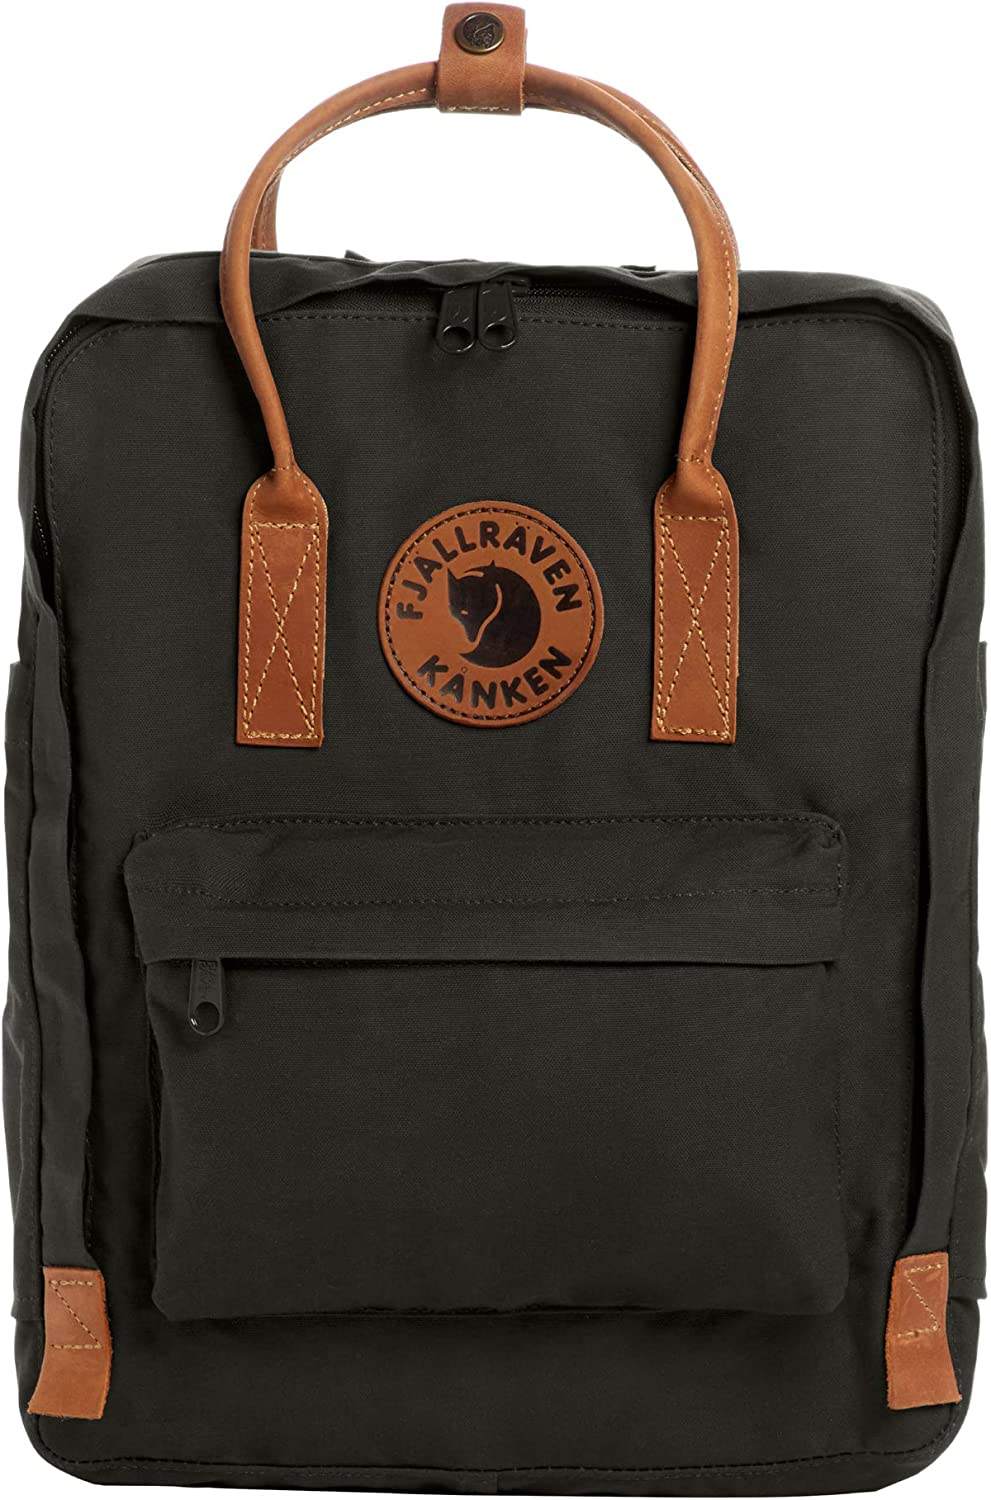 Fjallraven, Kanken No. 2 Backpack for Everyday